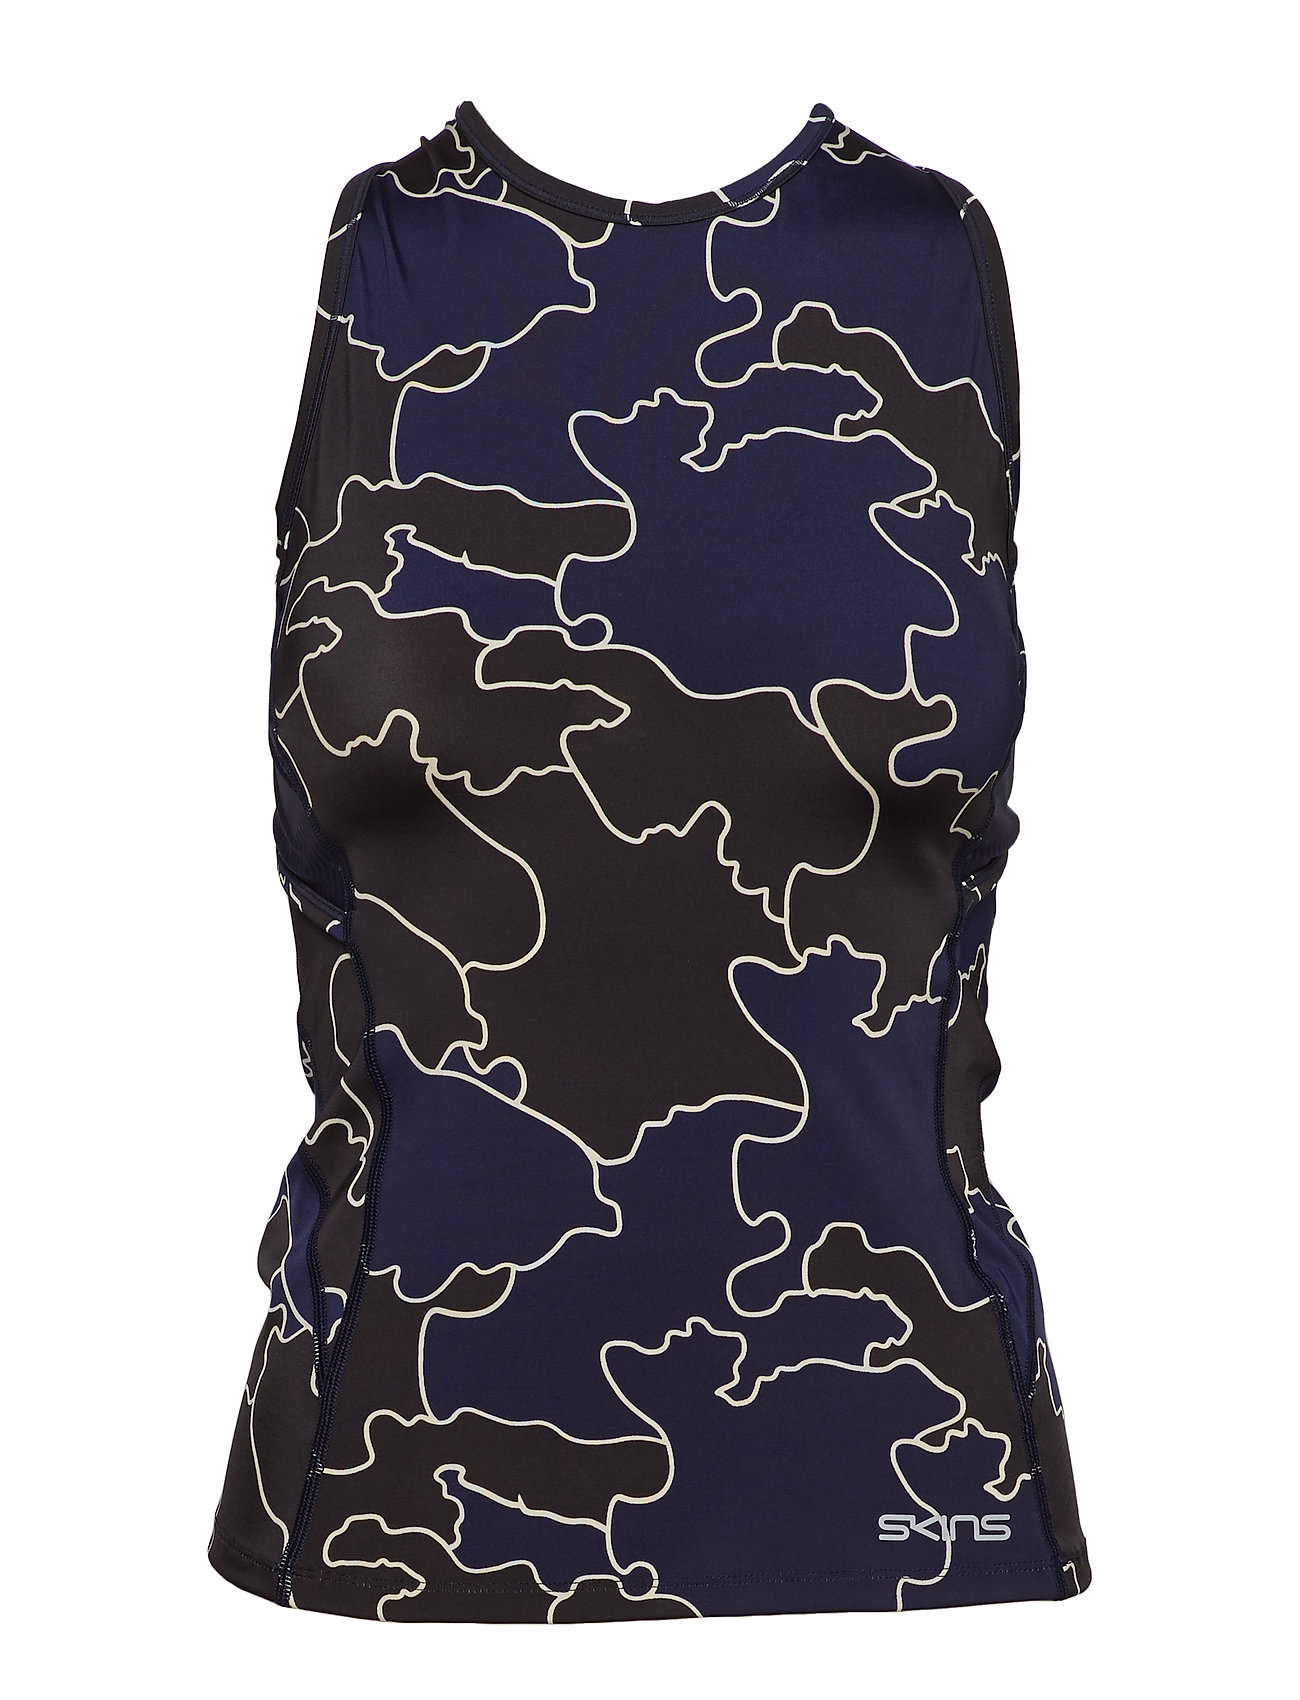 Skins DNAmic Primary Womens S/L Top - COASTLINES BLUE